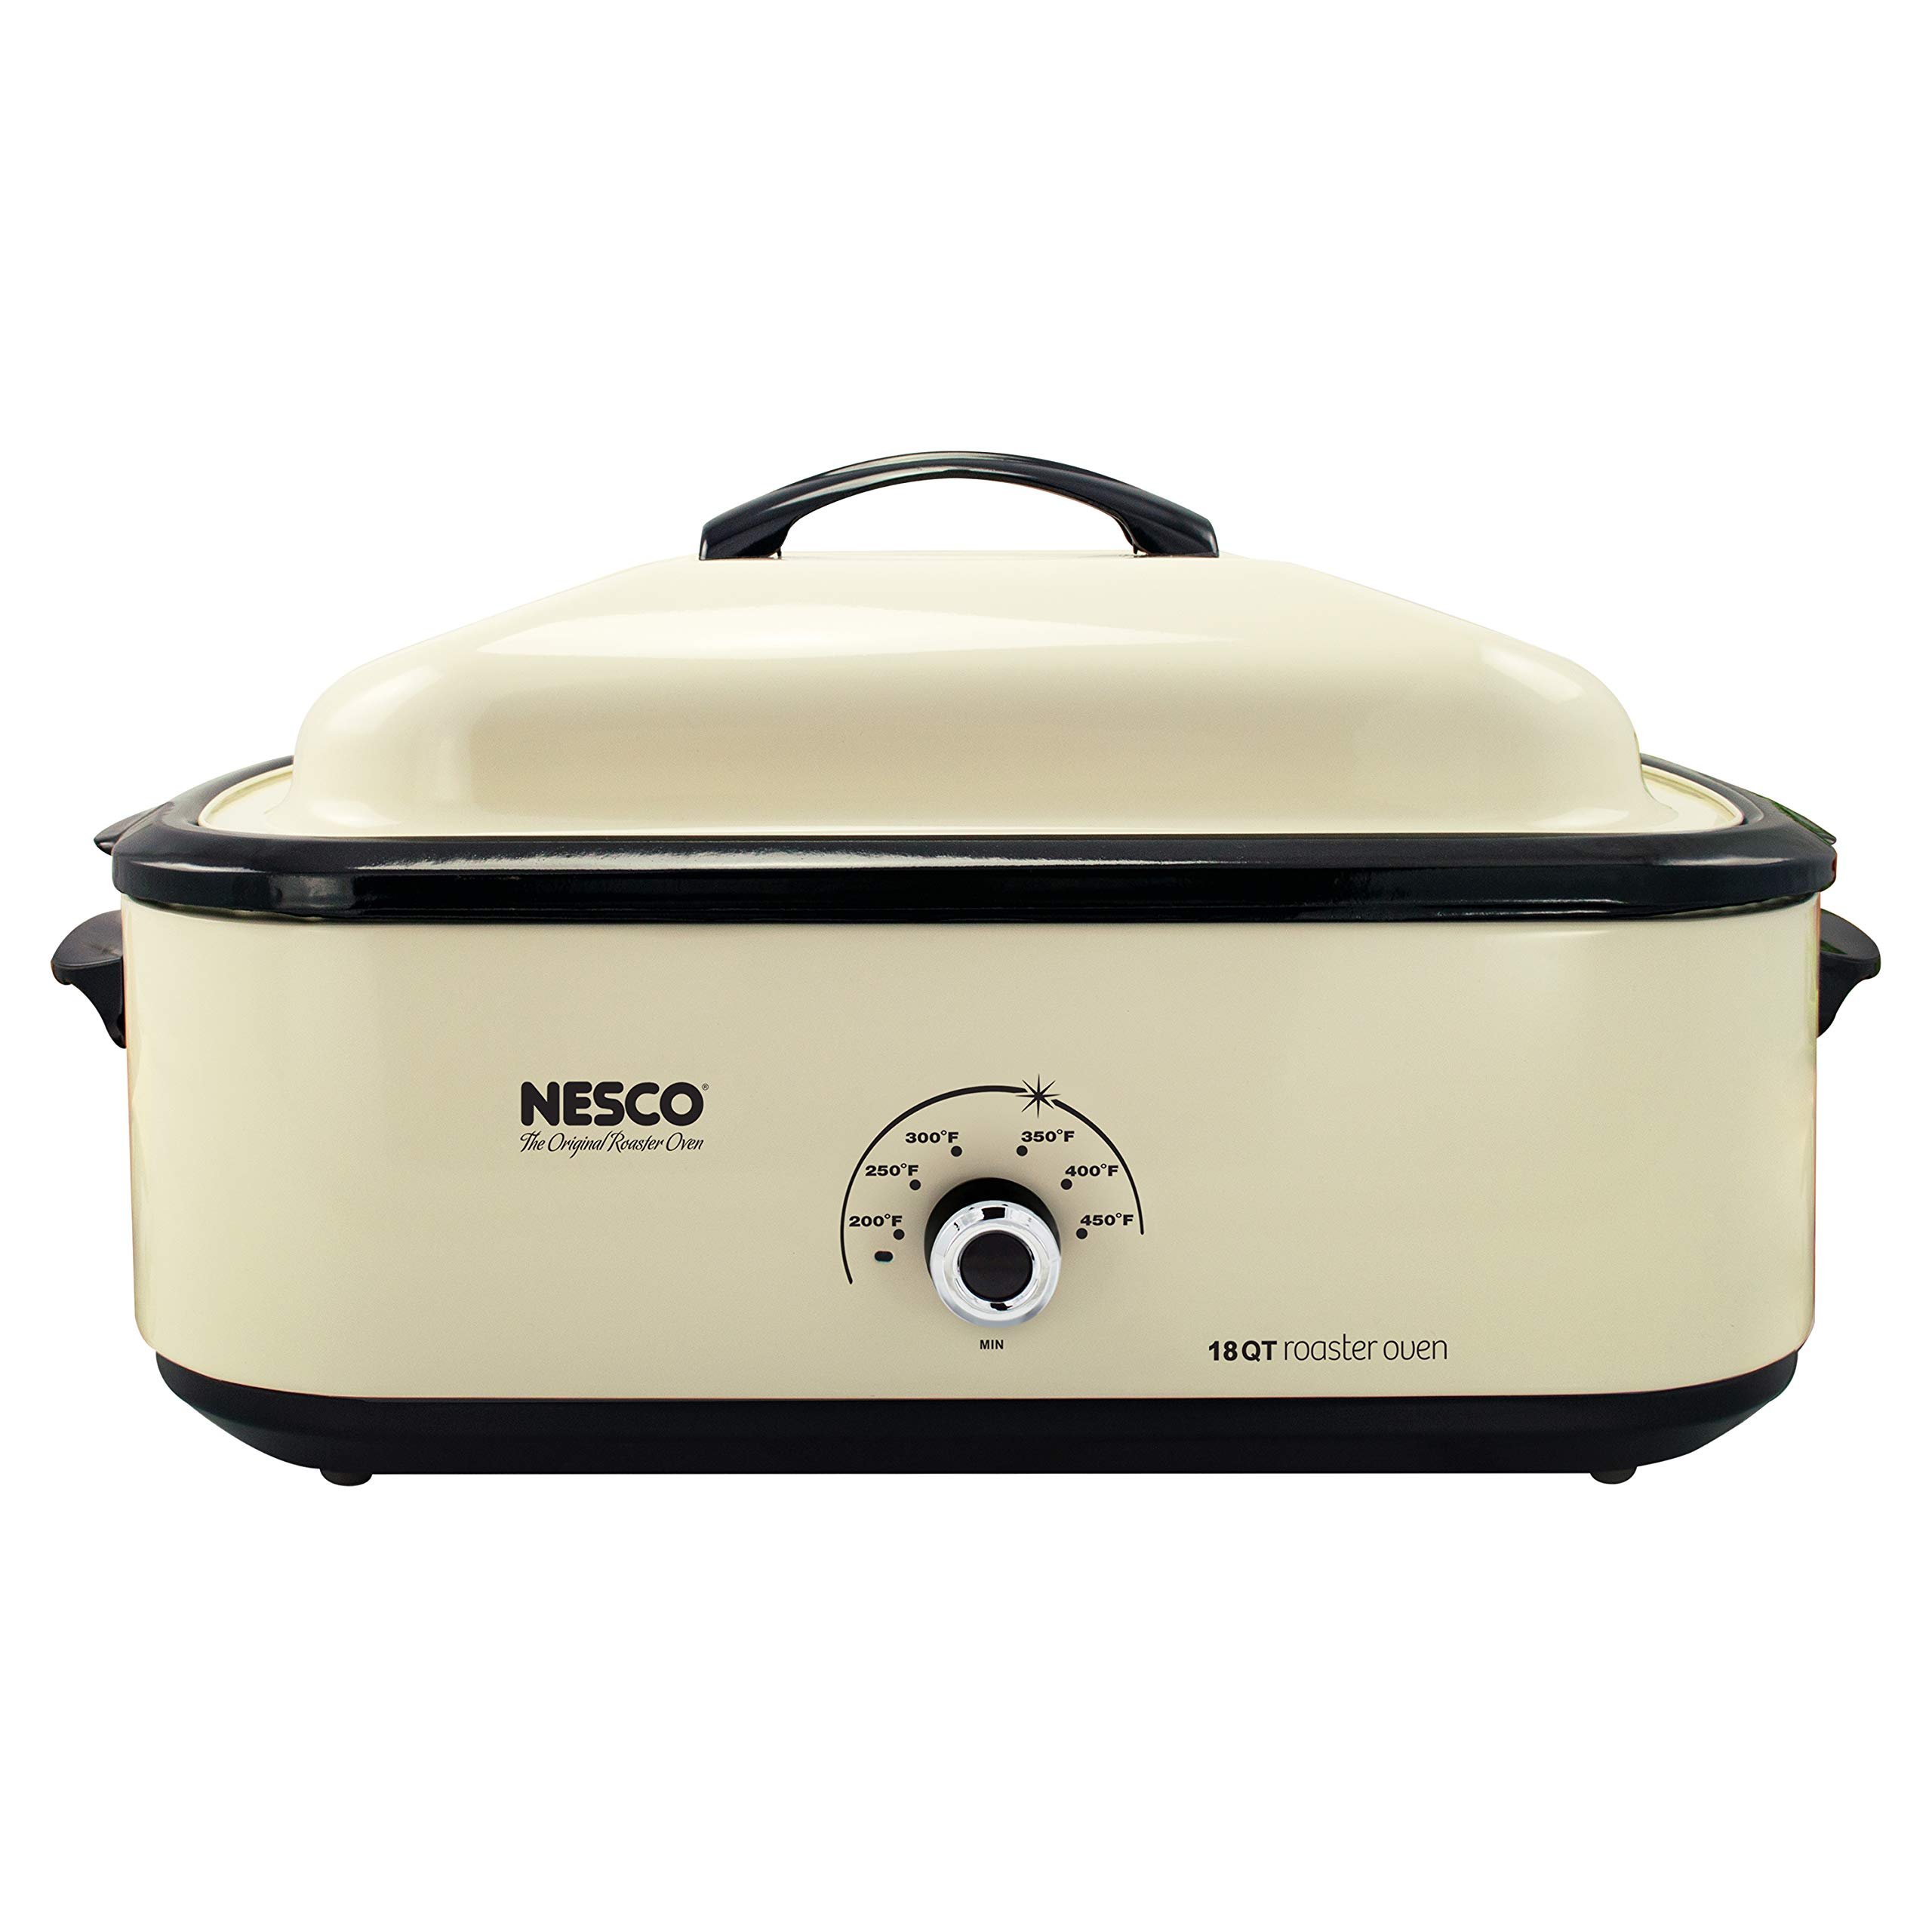 Nesco 4818-14 Classic Roaster Oven, 18-Quart, Porcelain Cookwell, Ivory by Nesco